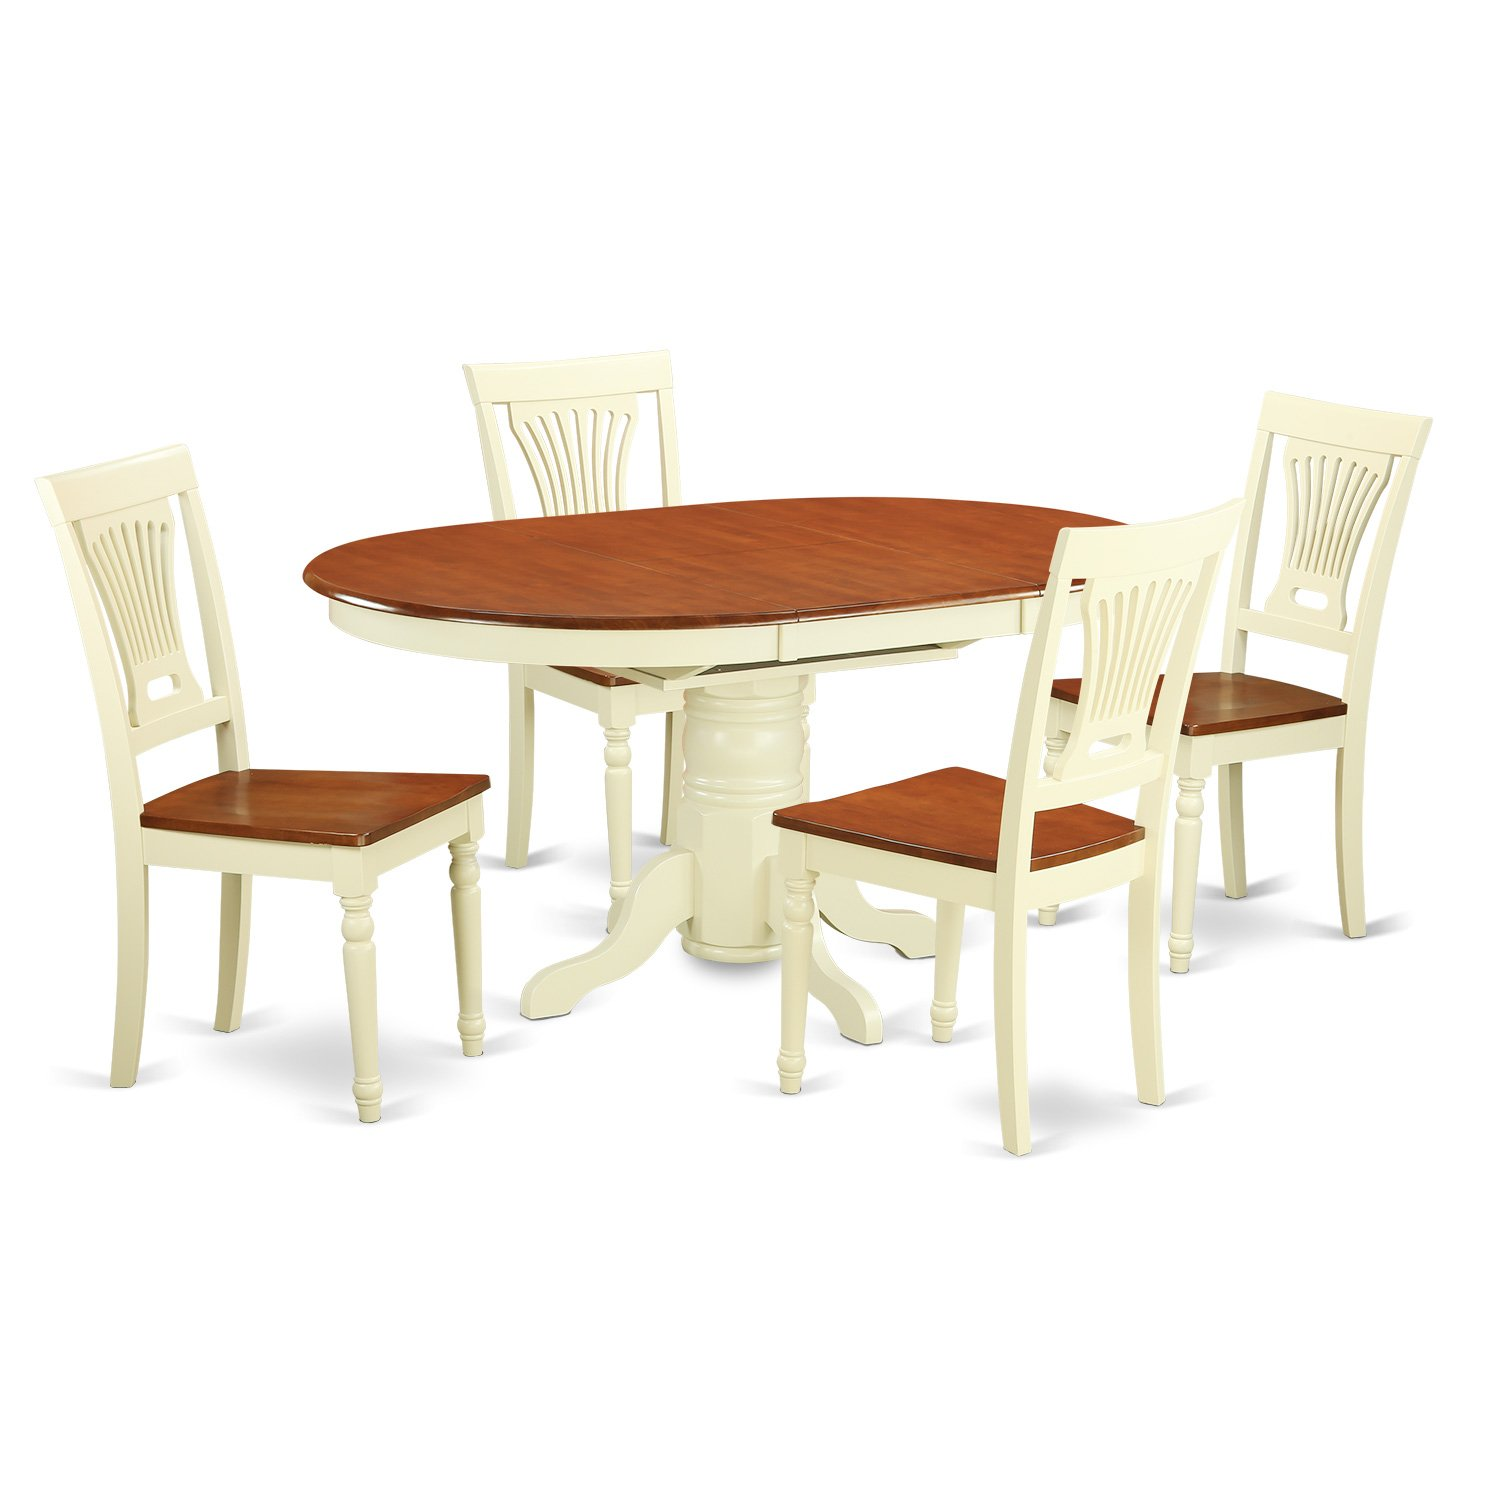 Amazoncom East West Furniture KEPL5 WHI W 5 Piece Dining